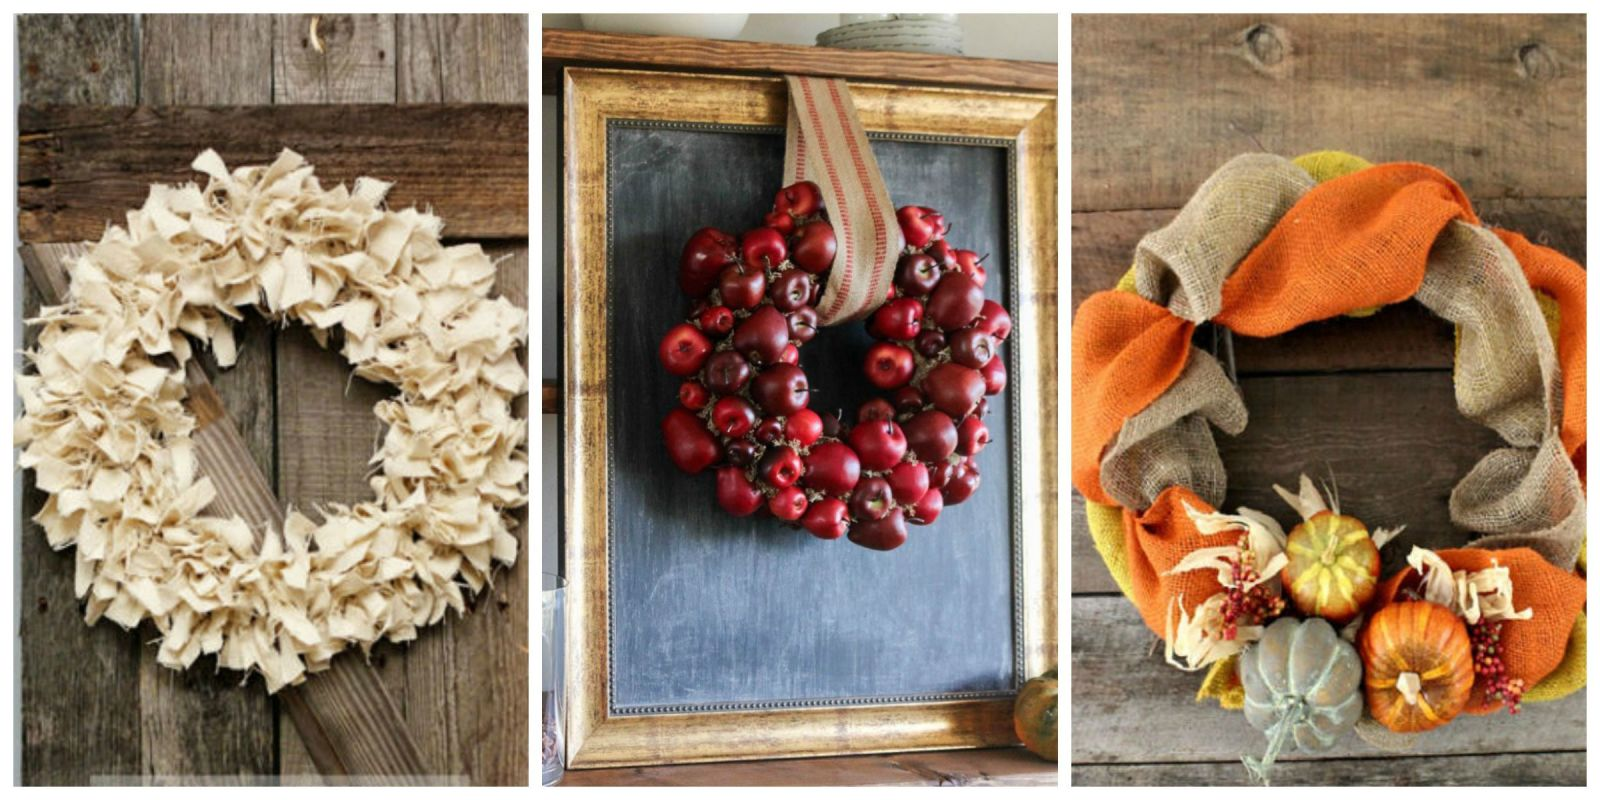 21 diy fall wreaths ideas for autumn wreath crafts for Fall diy crafts pinterest